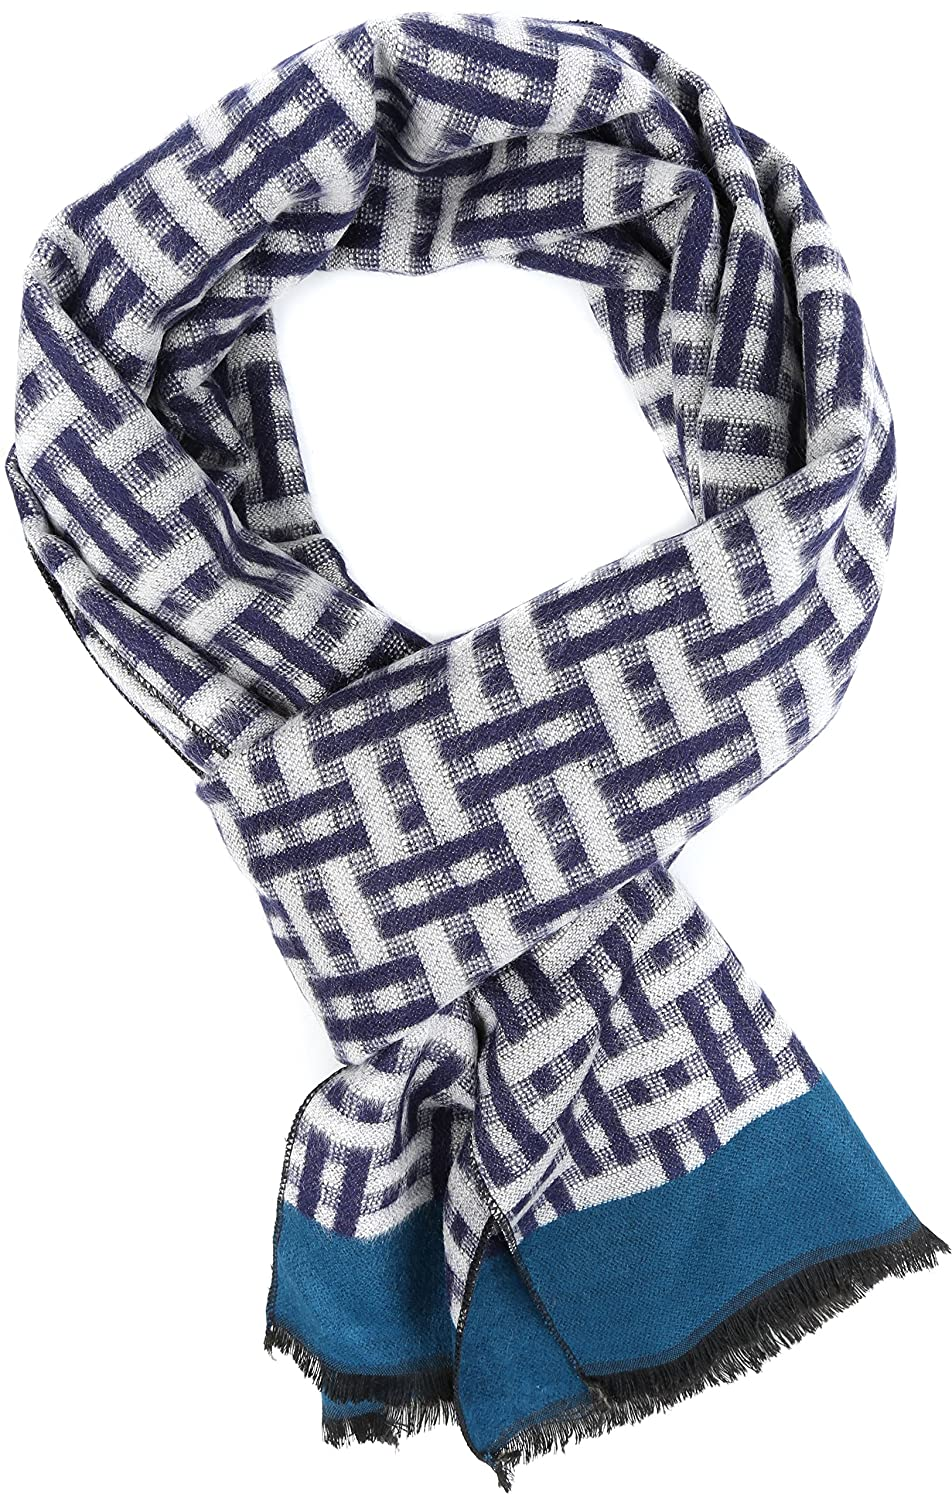 OS Sakkas SC161 YC16132-Rednavy Amerigo Patterned Colorful Super Soft and Warm Casual Everyday Scarf Unisex